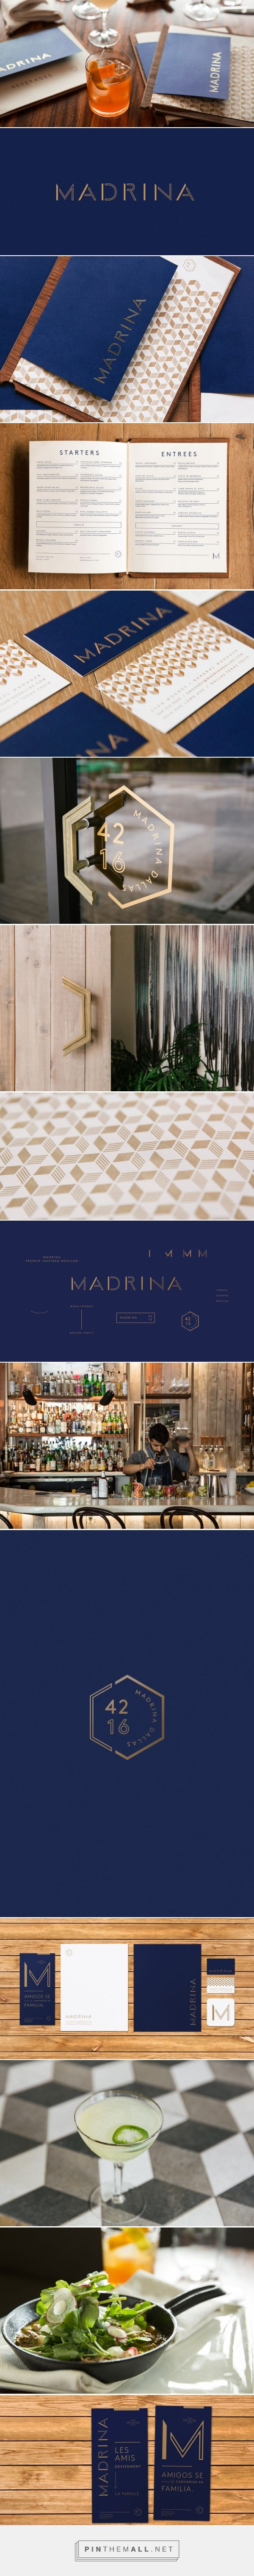 Madrina Restaurant Branding by Mast | Fivestar Branding – Design and Branding Agency & Inspiration Gallery